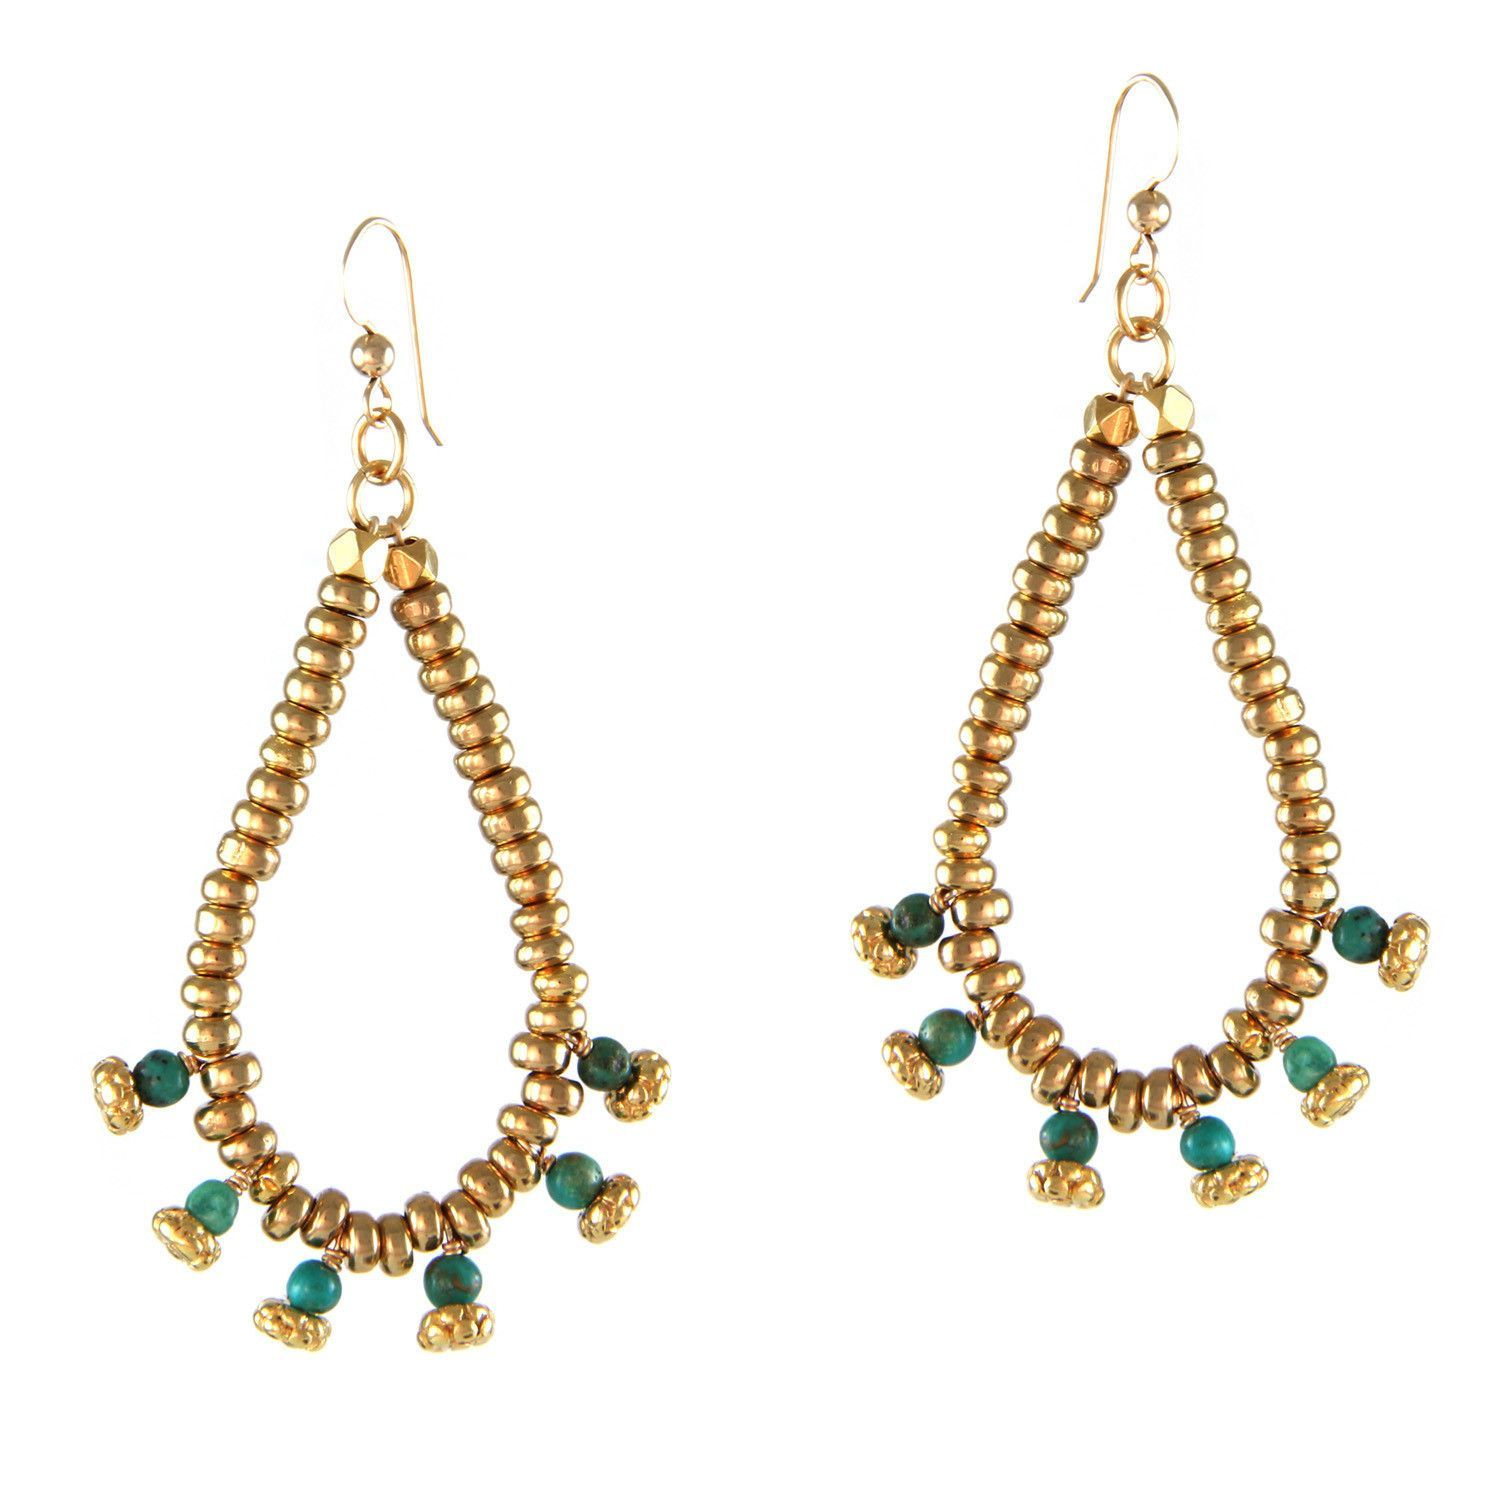 Cowgirl Fiesta in Turquoise and Gold Earring